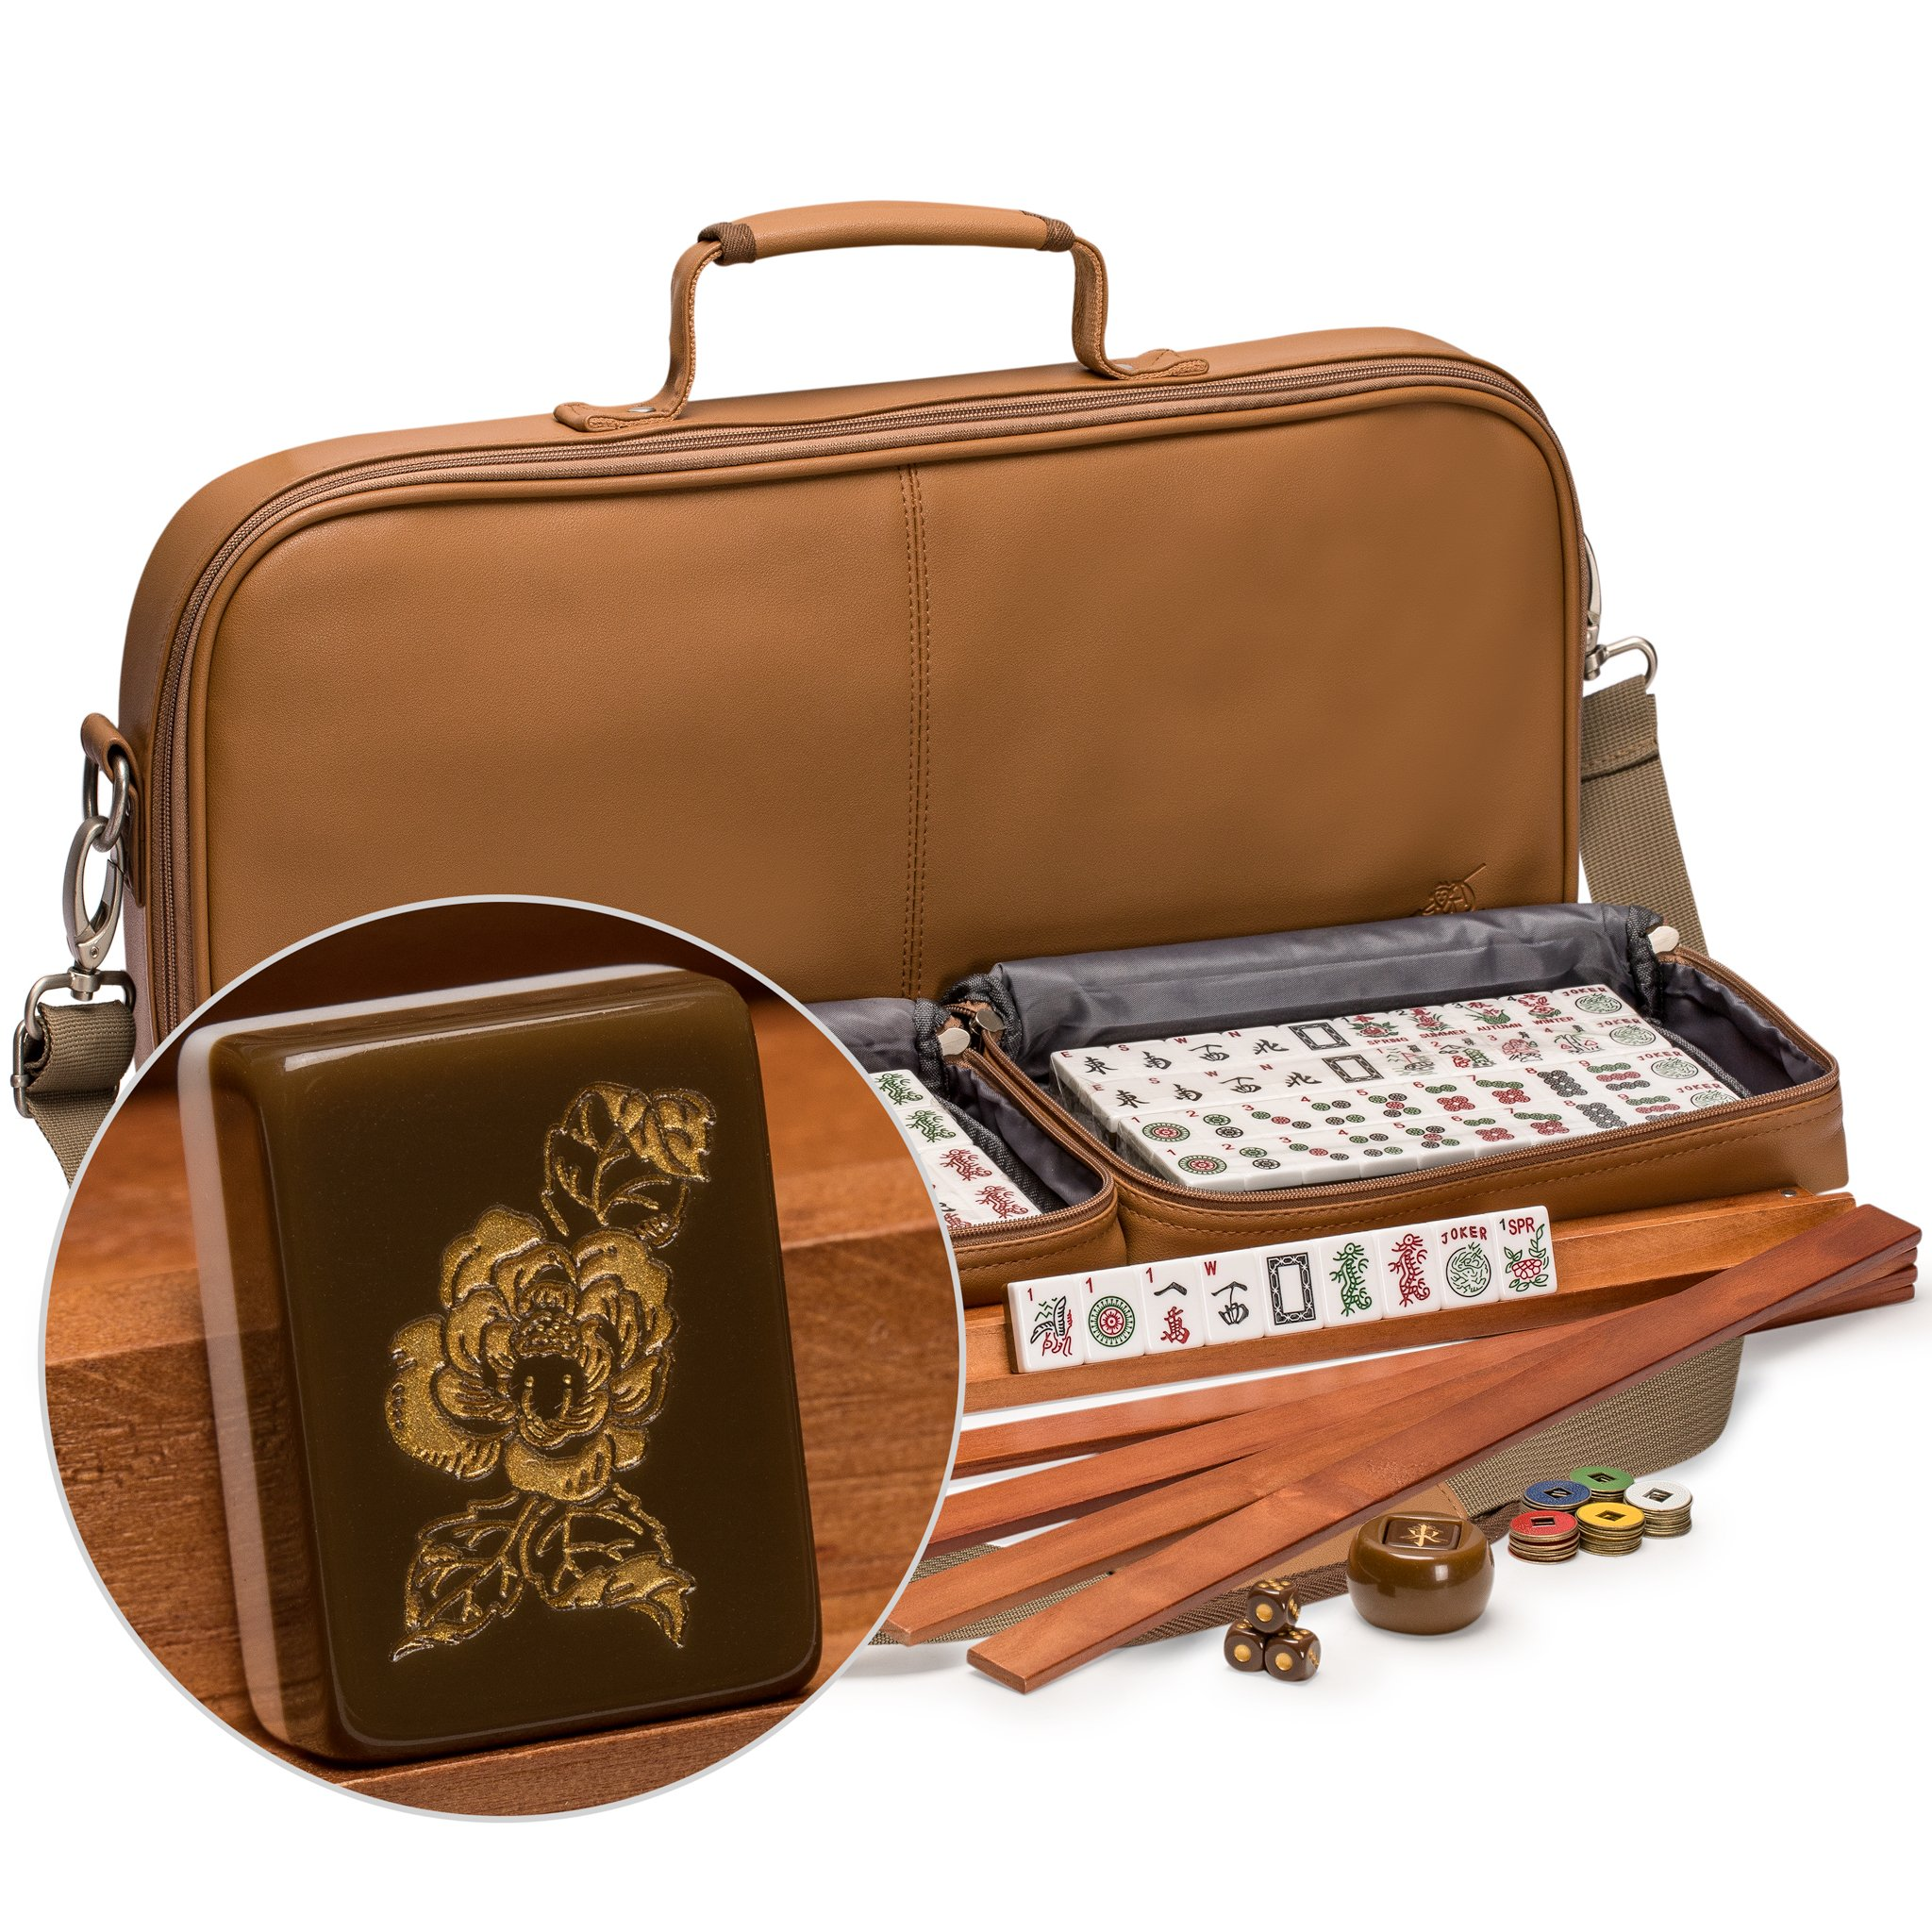 Yellow Mountain Imports American Mahjong (Mah Jong, Mahjongg, Mah-Jongg, Mah Jongg) Set with 166 Tiles Adorned with Floral Motif, Leatherette Case, Racks with Pushers, and Accessories, ''Peony''